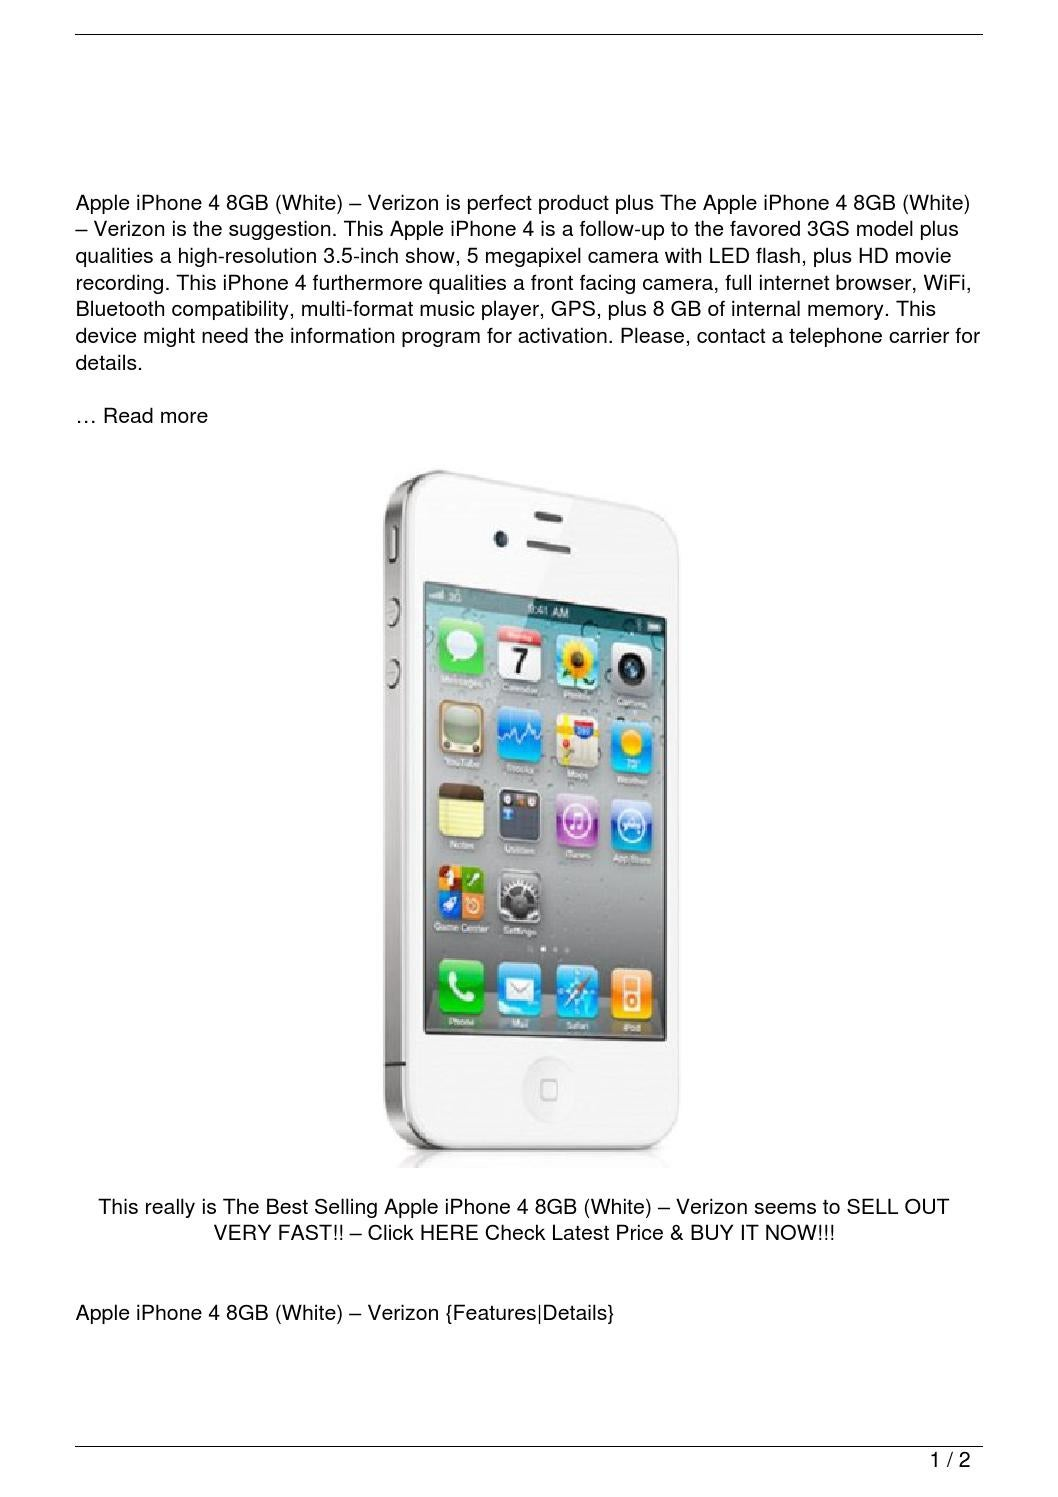 iphone 4 verizon apple iphone 4 8gb white verizon review by le trung 10892